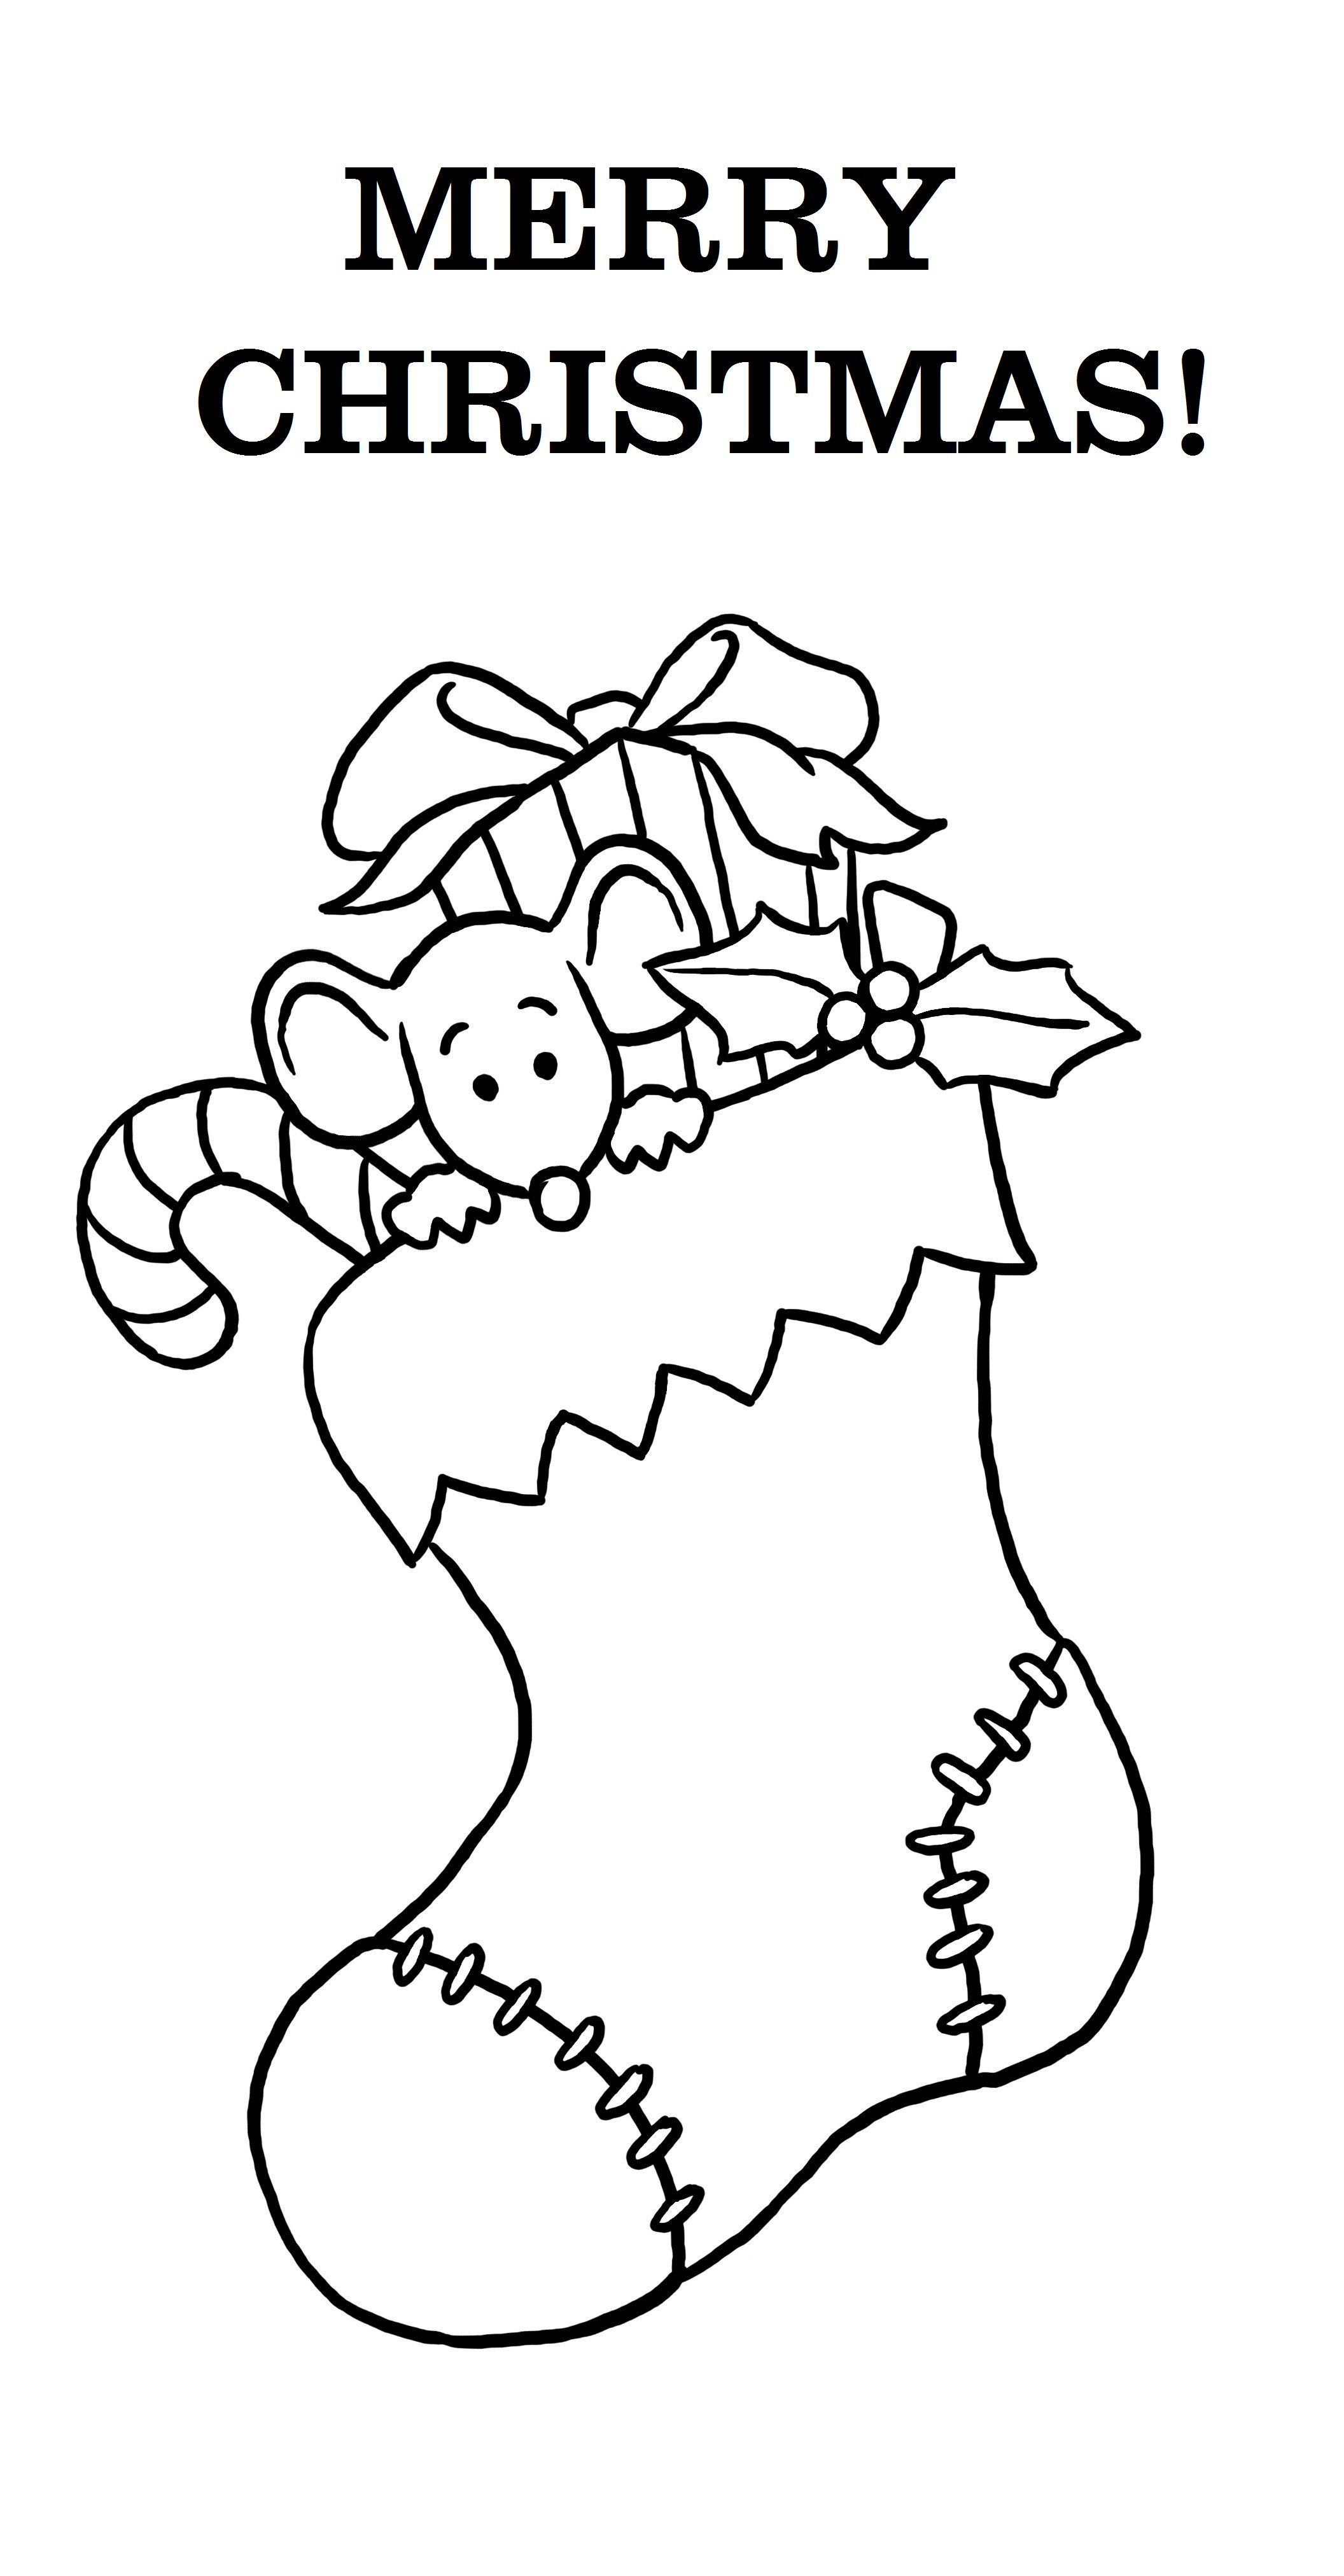 Best ideas about Christmas Stocking Coloring Sheets For Kids . Save or Pin Free Printable Merry Christmas Coloring Pages Now.